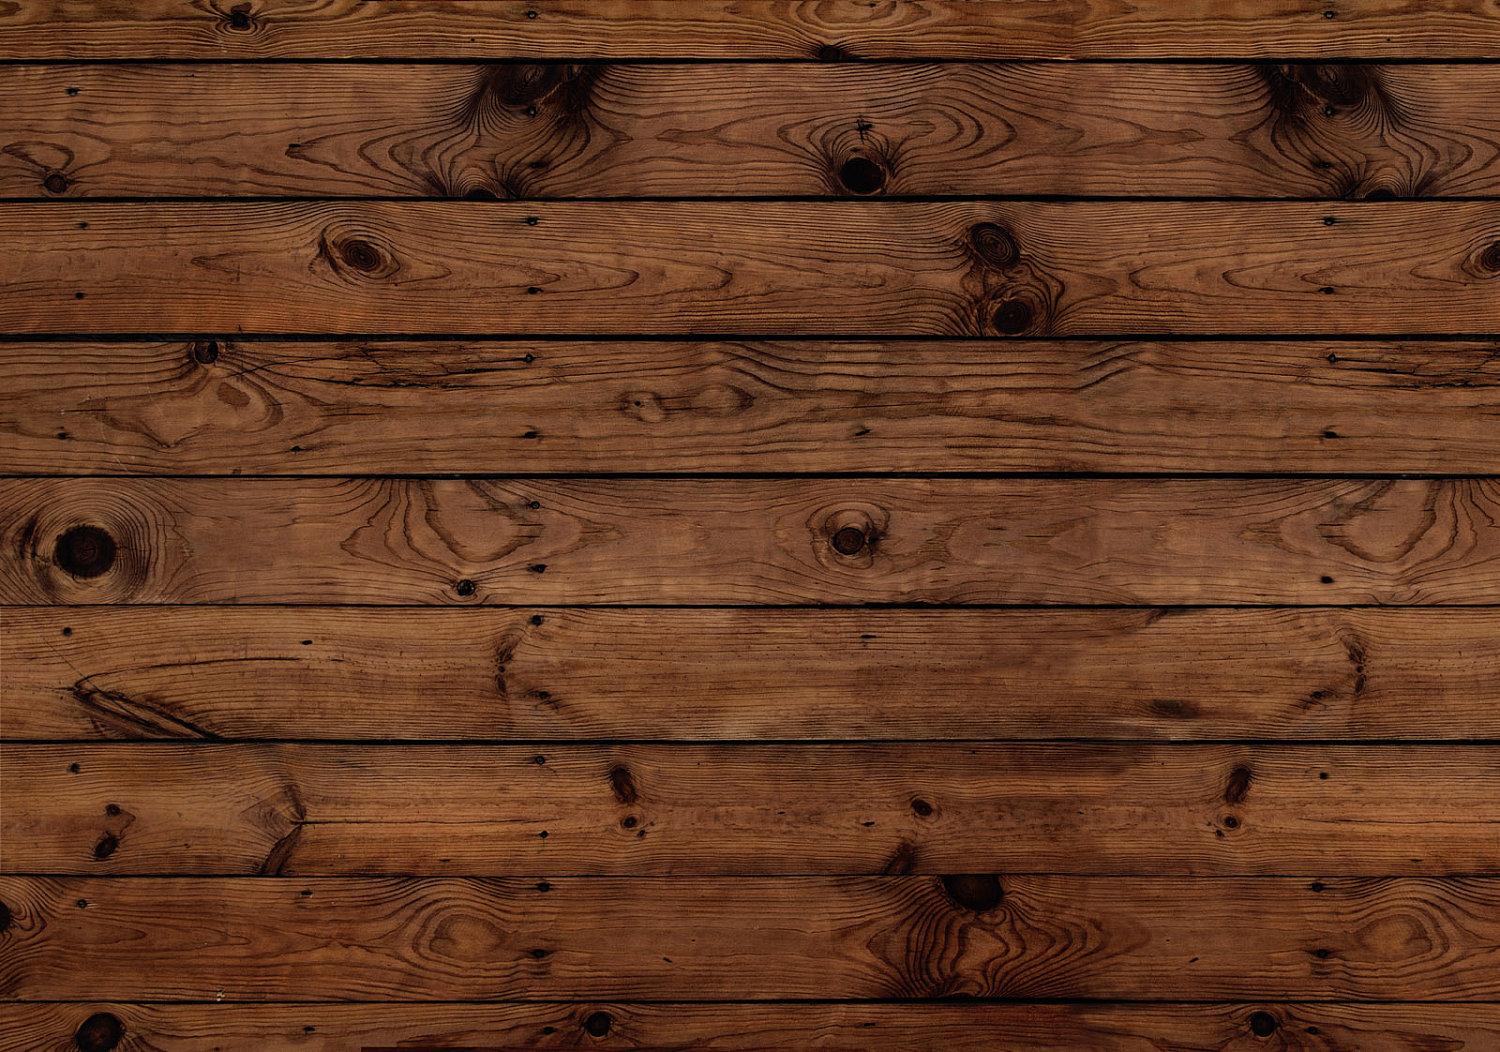 Darkwood Plank Faux Wood Rug Flooring Background or by funlicious 1500x1052